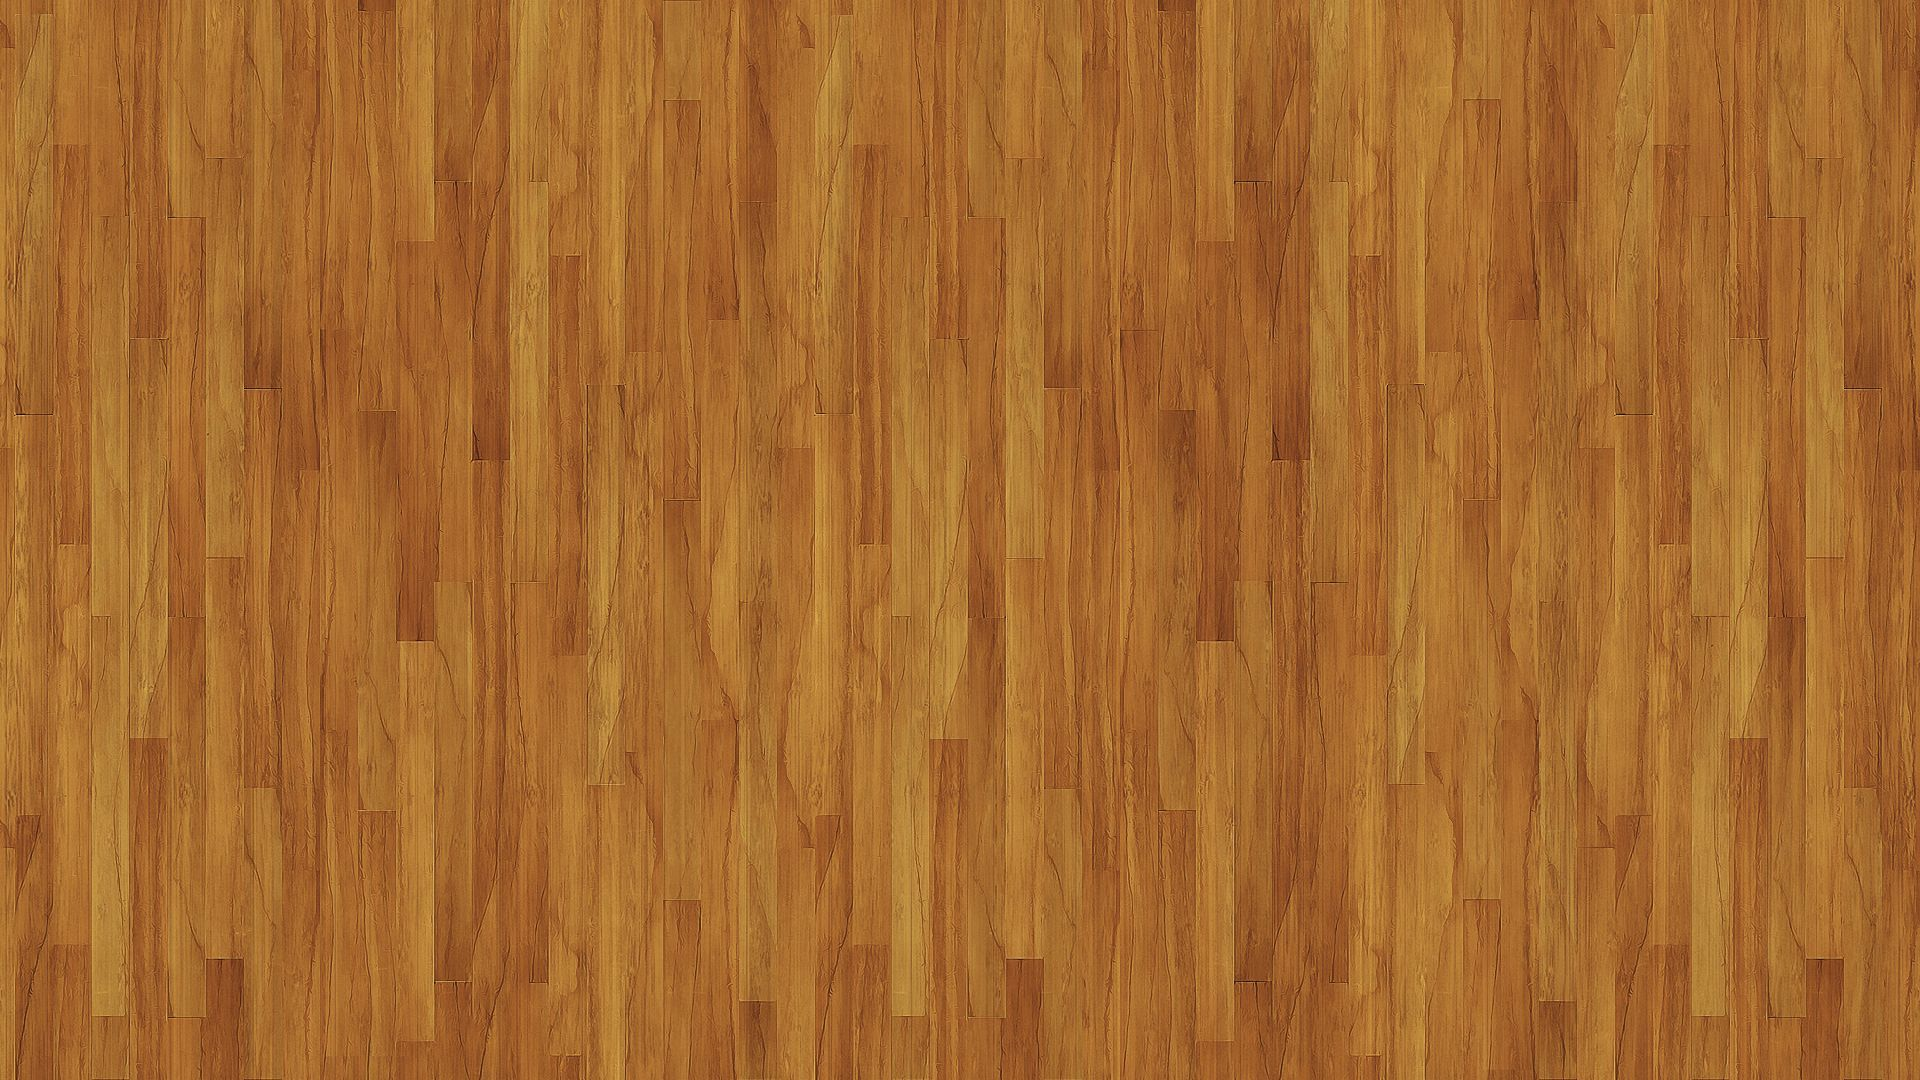 Hardwood floor wallpaper wallpapersafari for At floor or on floor